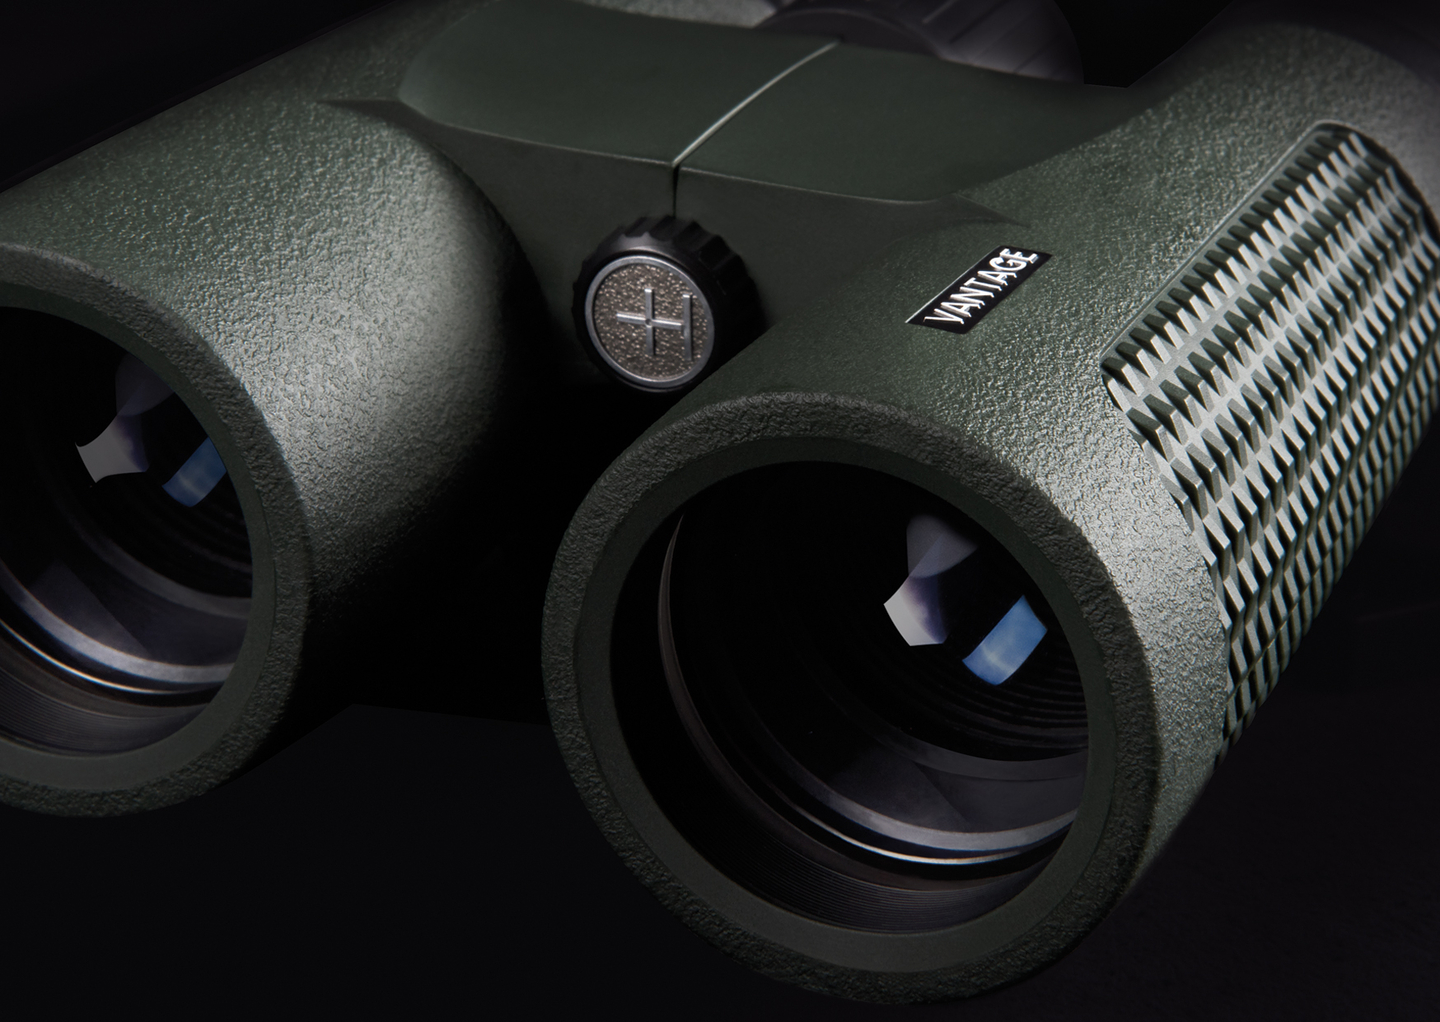 Vantage Lens and Body